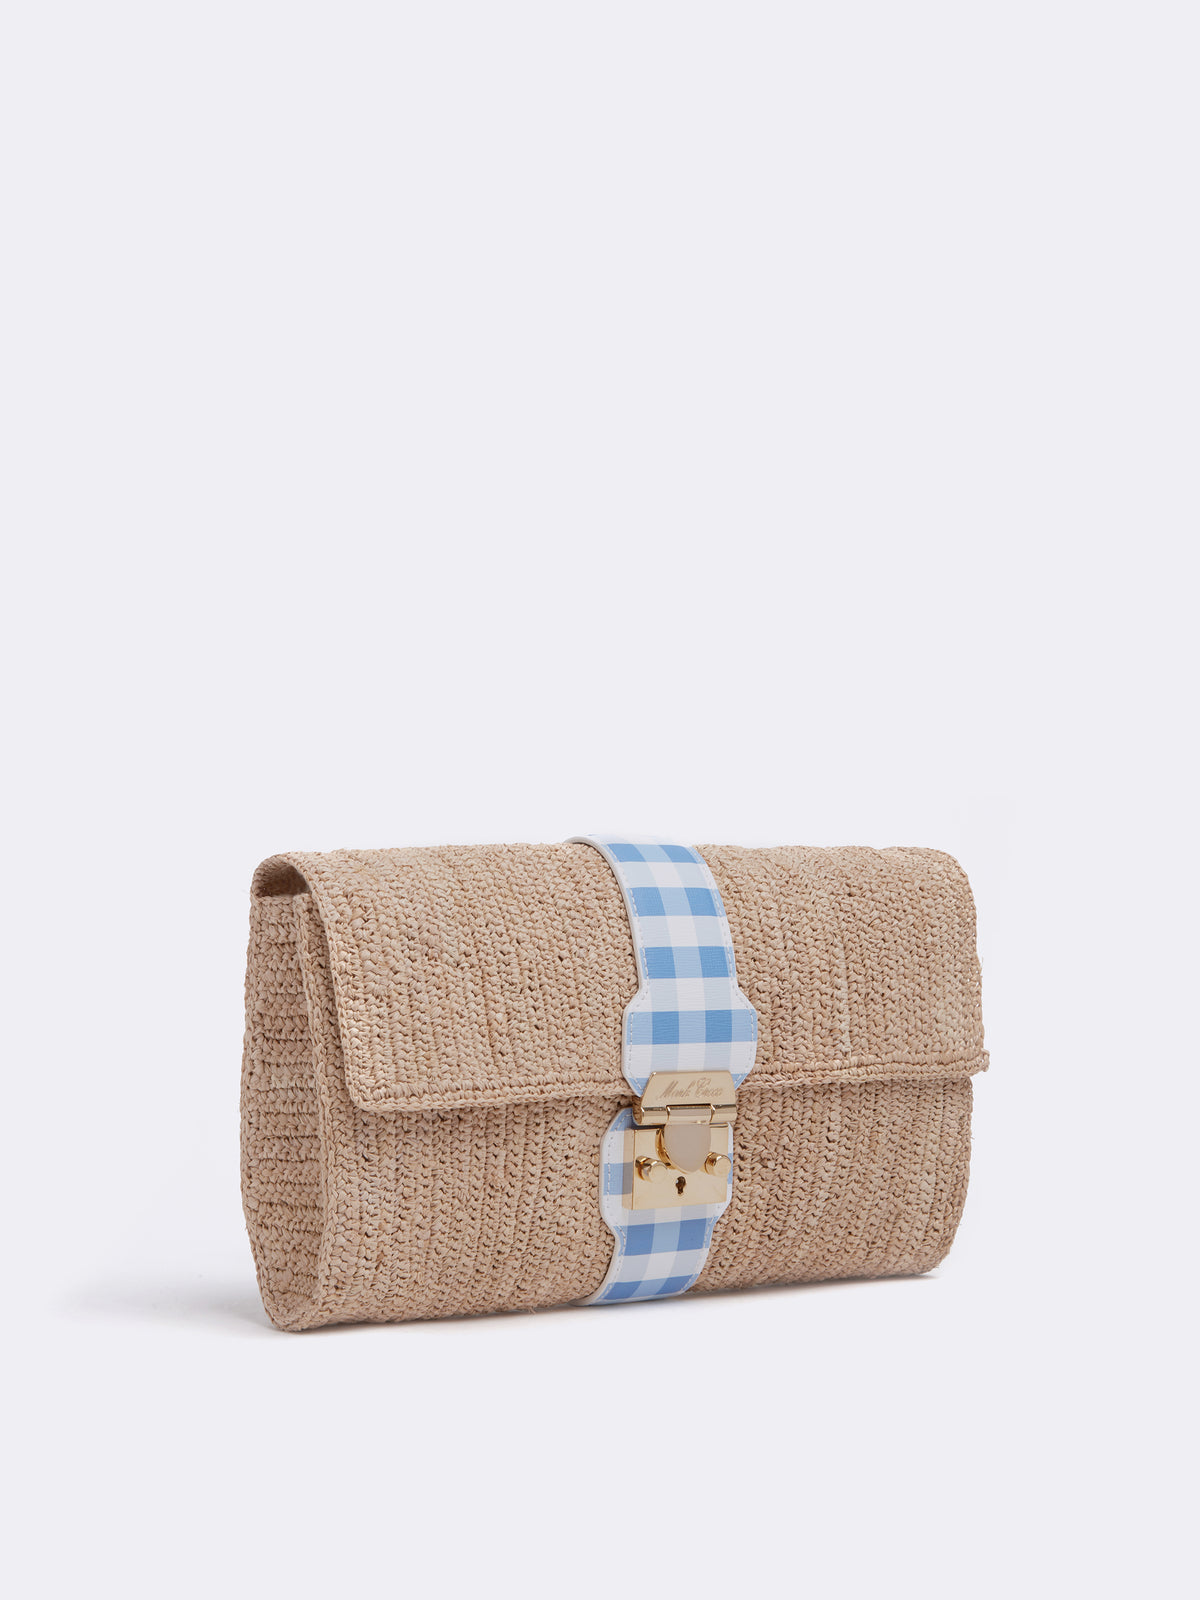 Mark Cross Sylvette Raffia & Leather Clutch Mini Franzi Gingham Regatta Blue / Natural Raffia Side